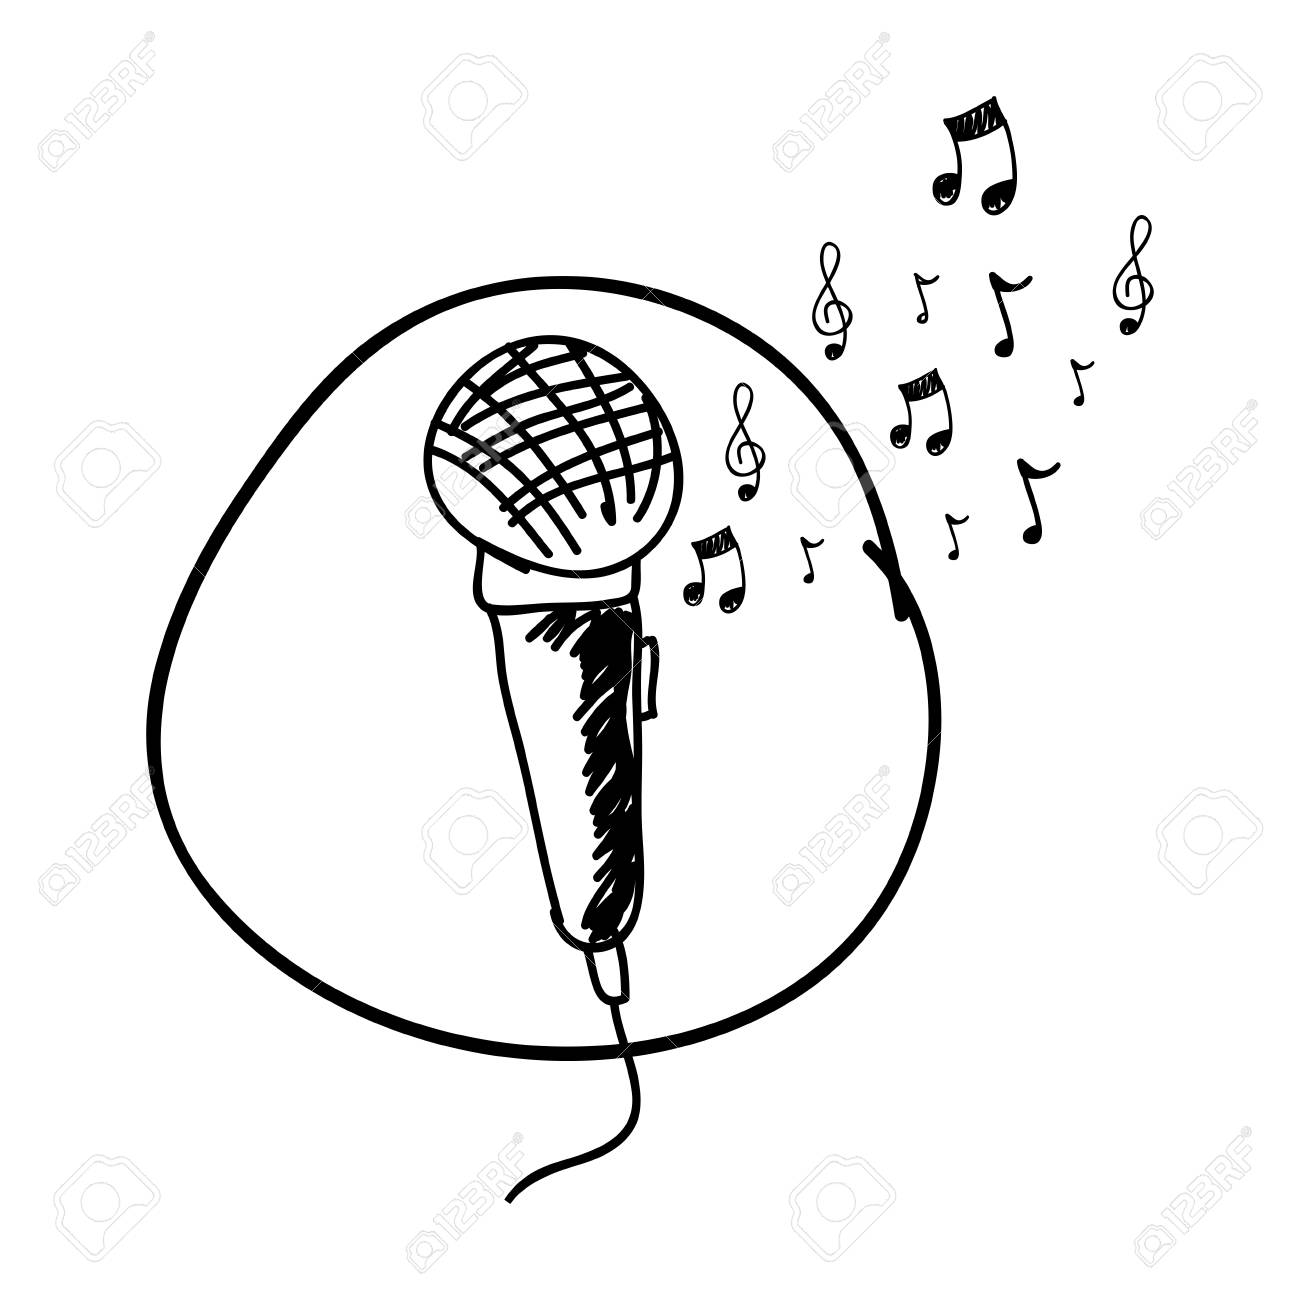 Monochrome Hand Drawing Of Microphone In Circle And Musical Notes Royalty Free Cliparts Vectors And Stock Illustration Image 97498998